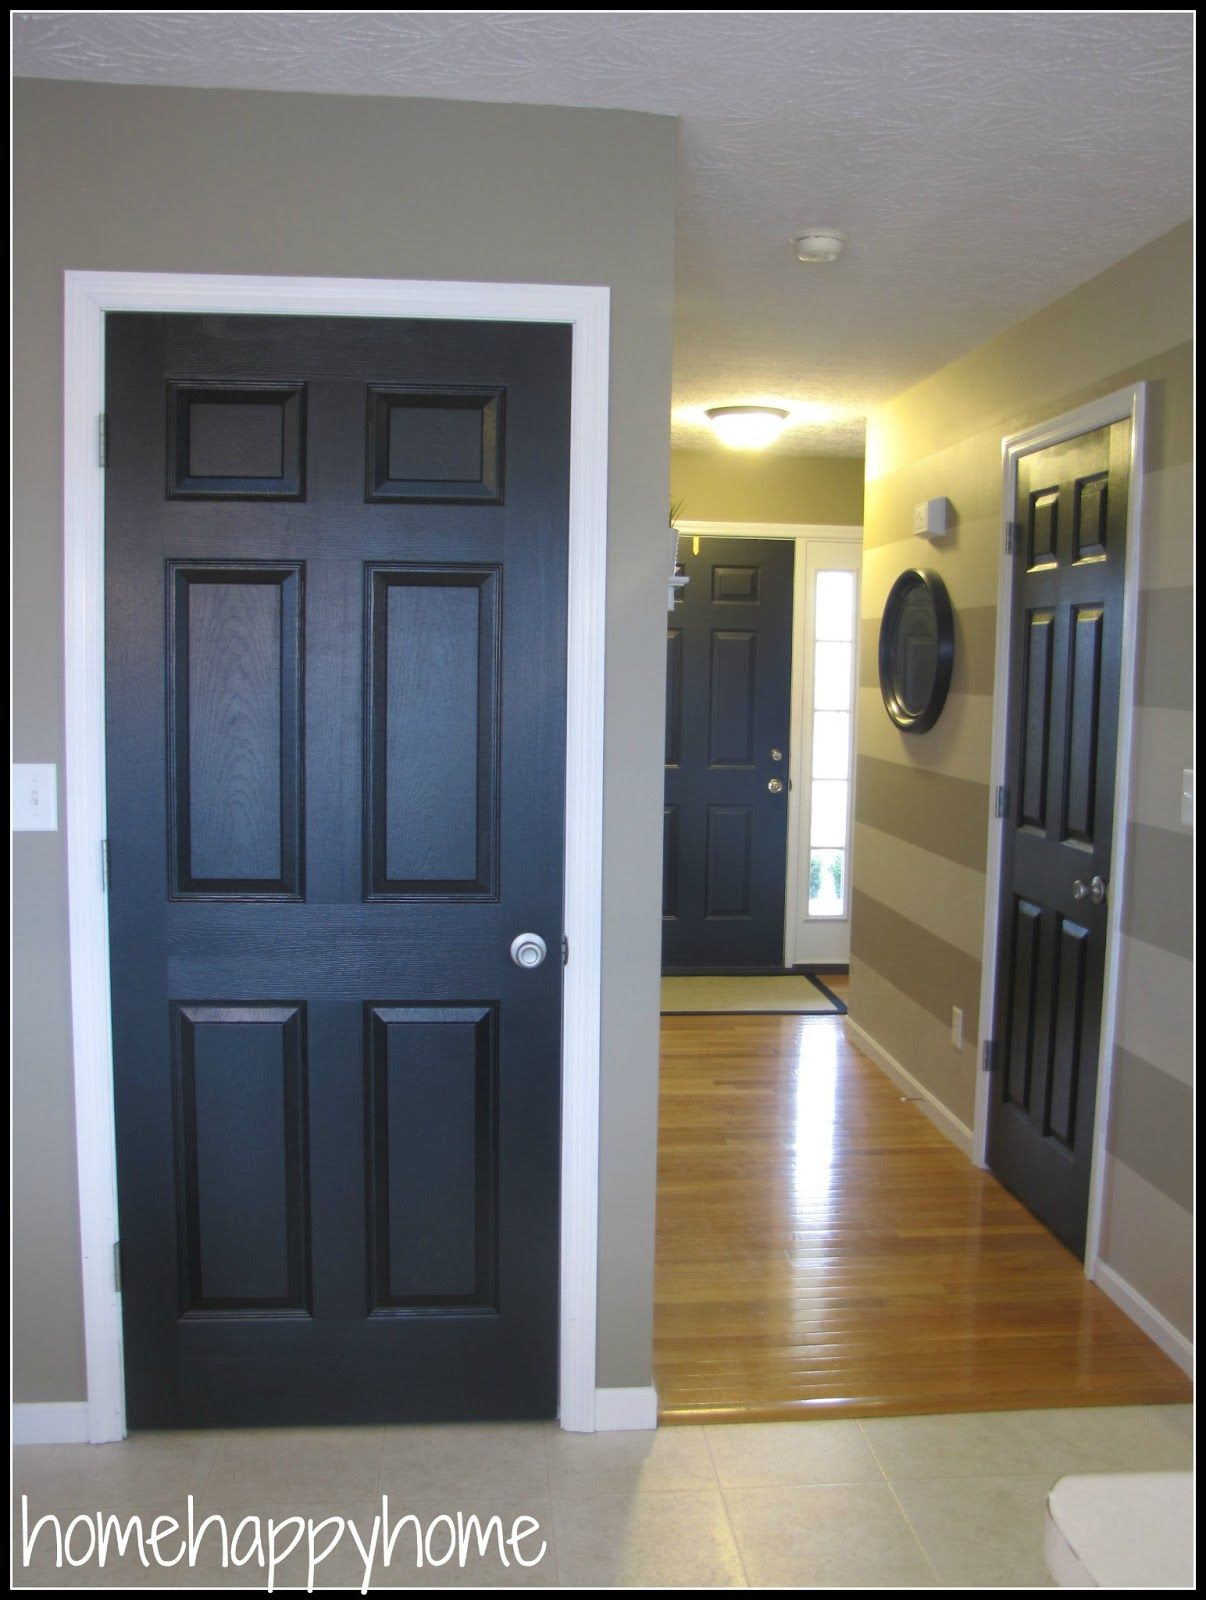 Home happy home black painted interior doors paint for Paint for doors interior